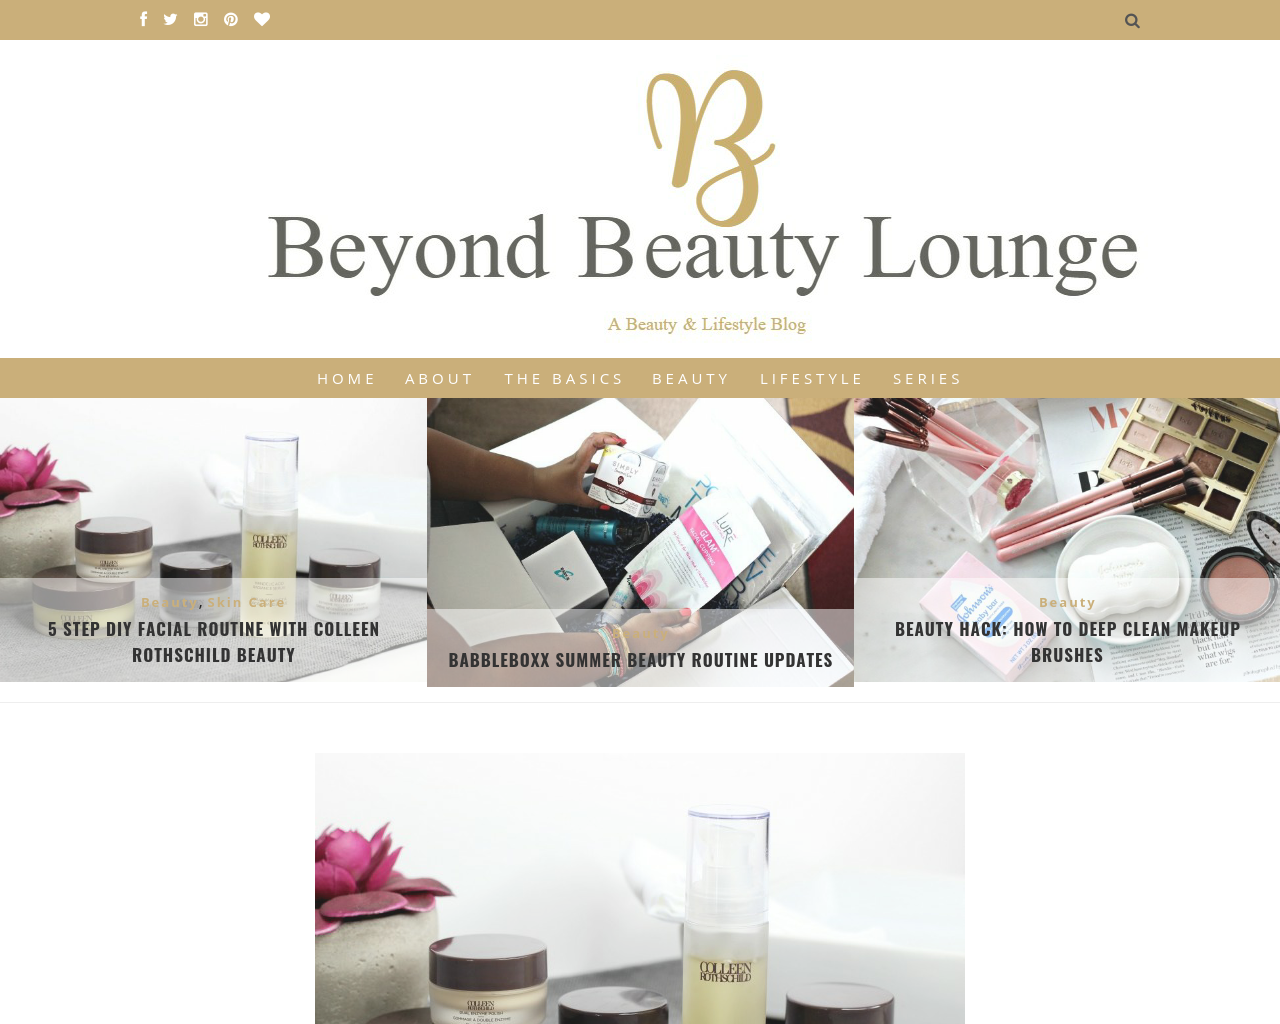 Beyond-Beauty-Lounge-Advertising-Reviews-Pricing